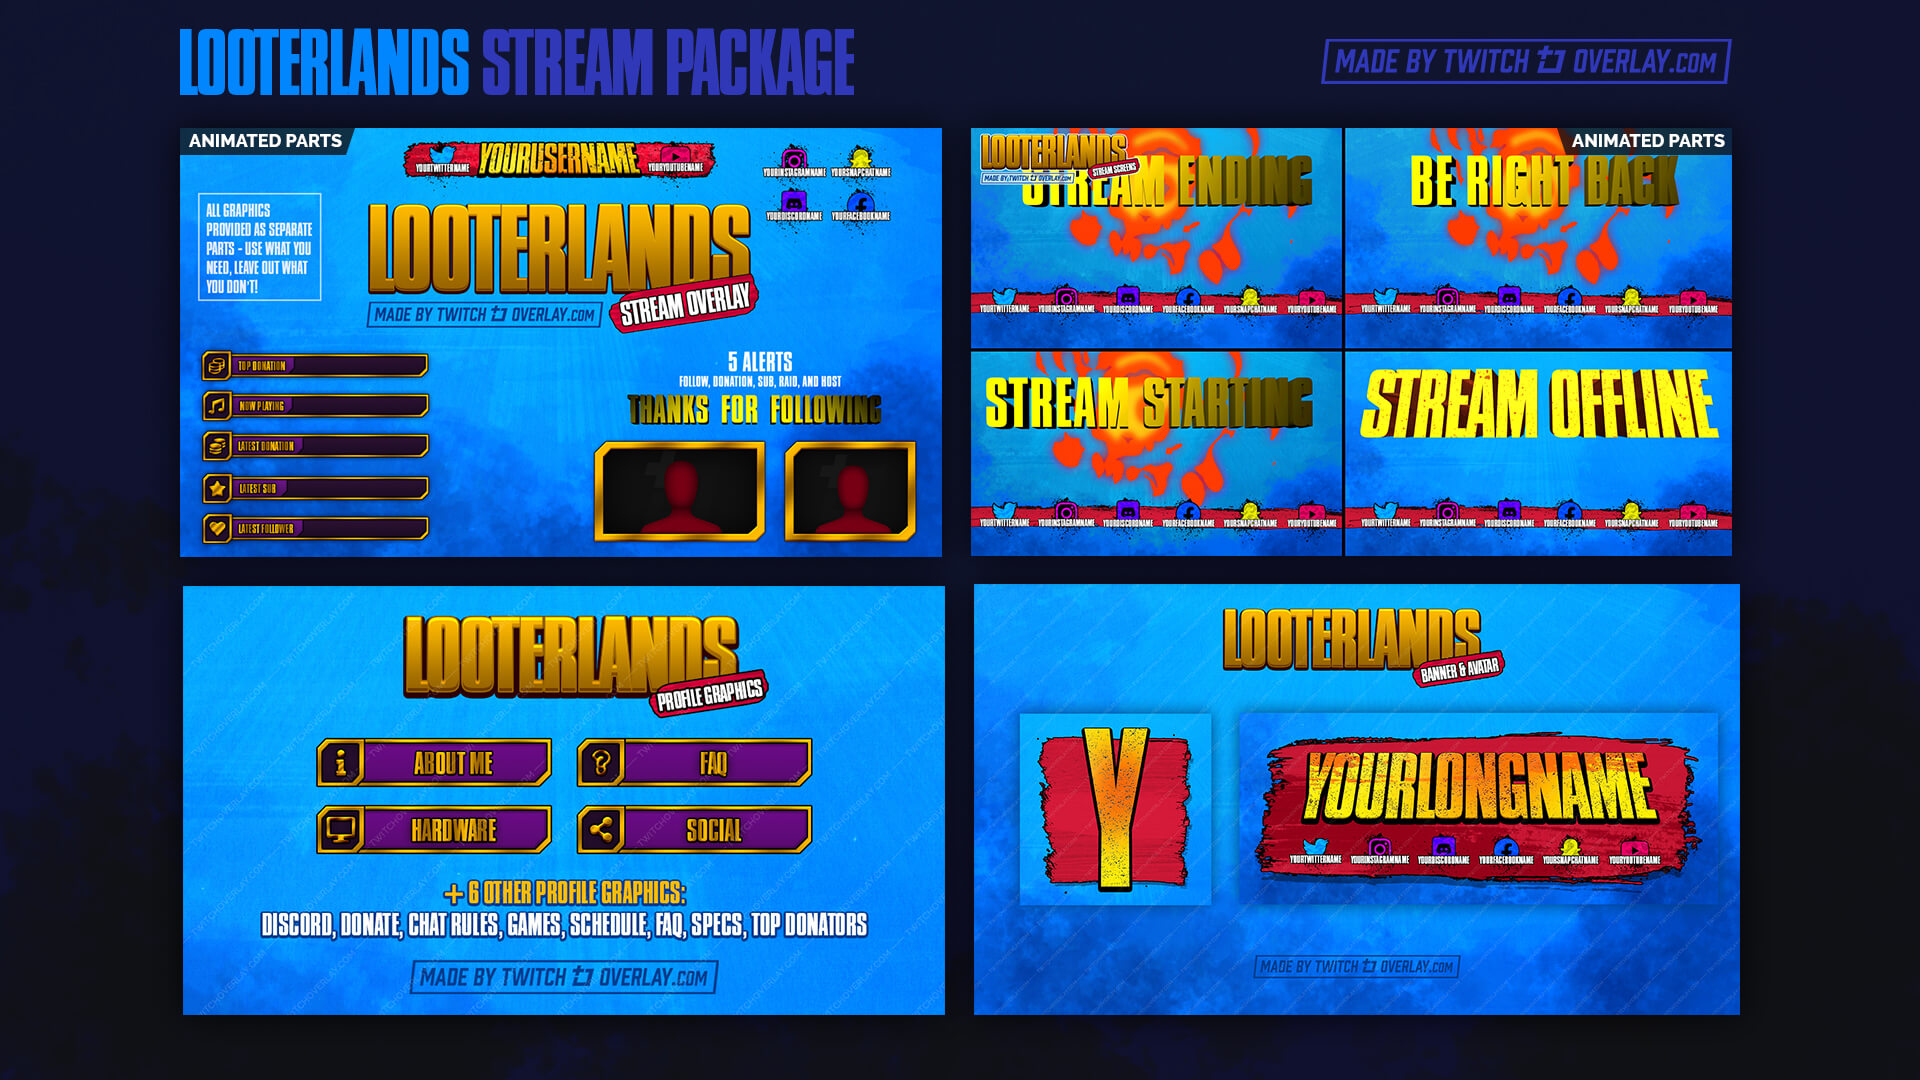 borderlands 3 stream package - Twitch Overlay